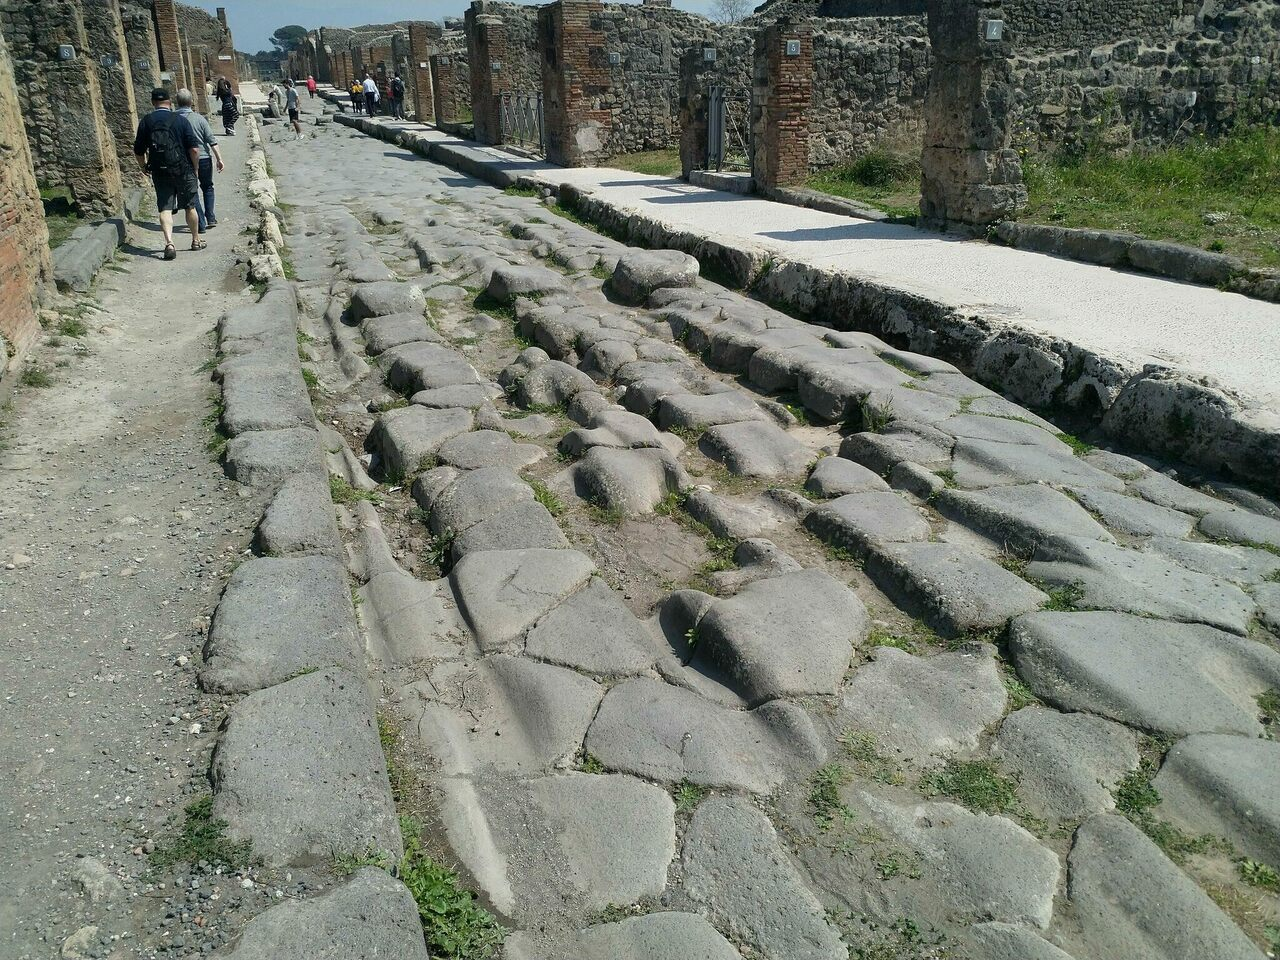 Visitors to Pompeii might pluck potsherds from the ground as souvenirs, but later come to regret it.